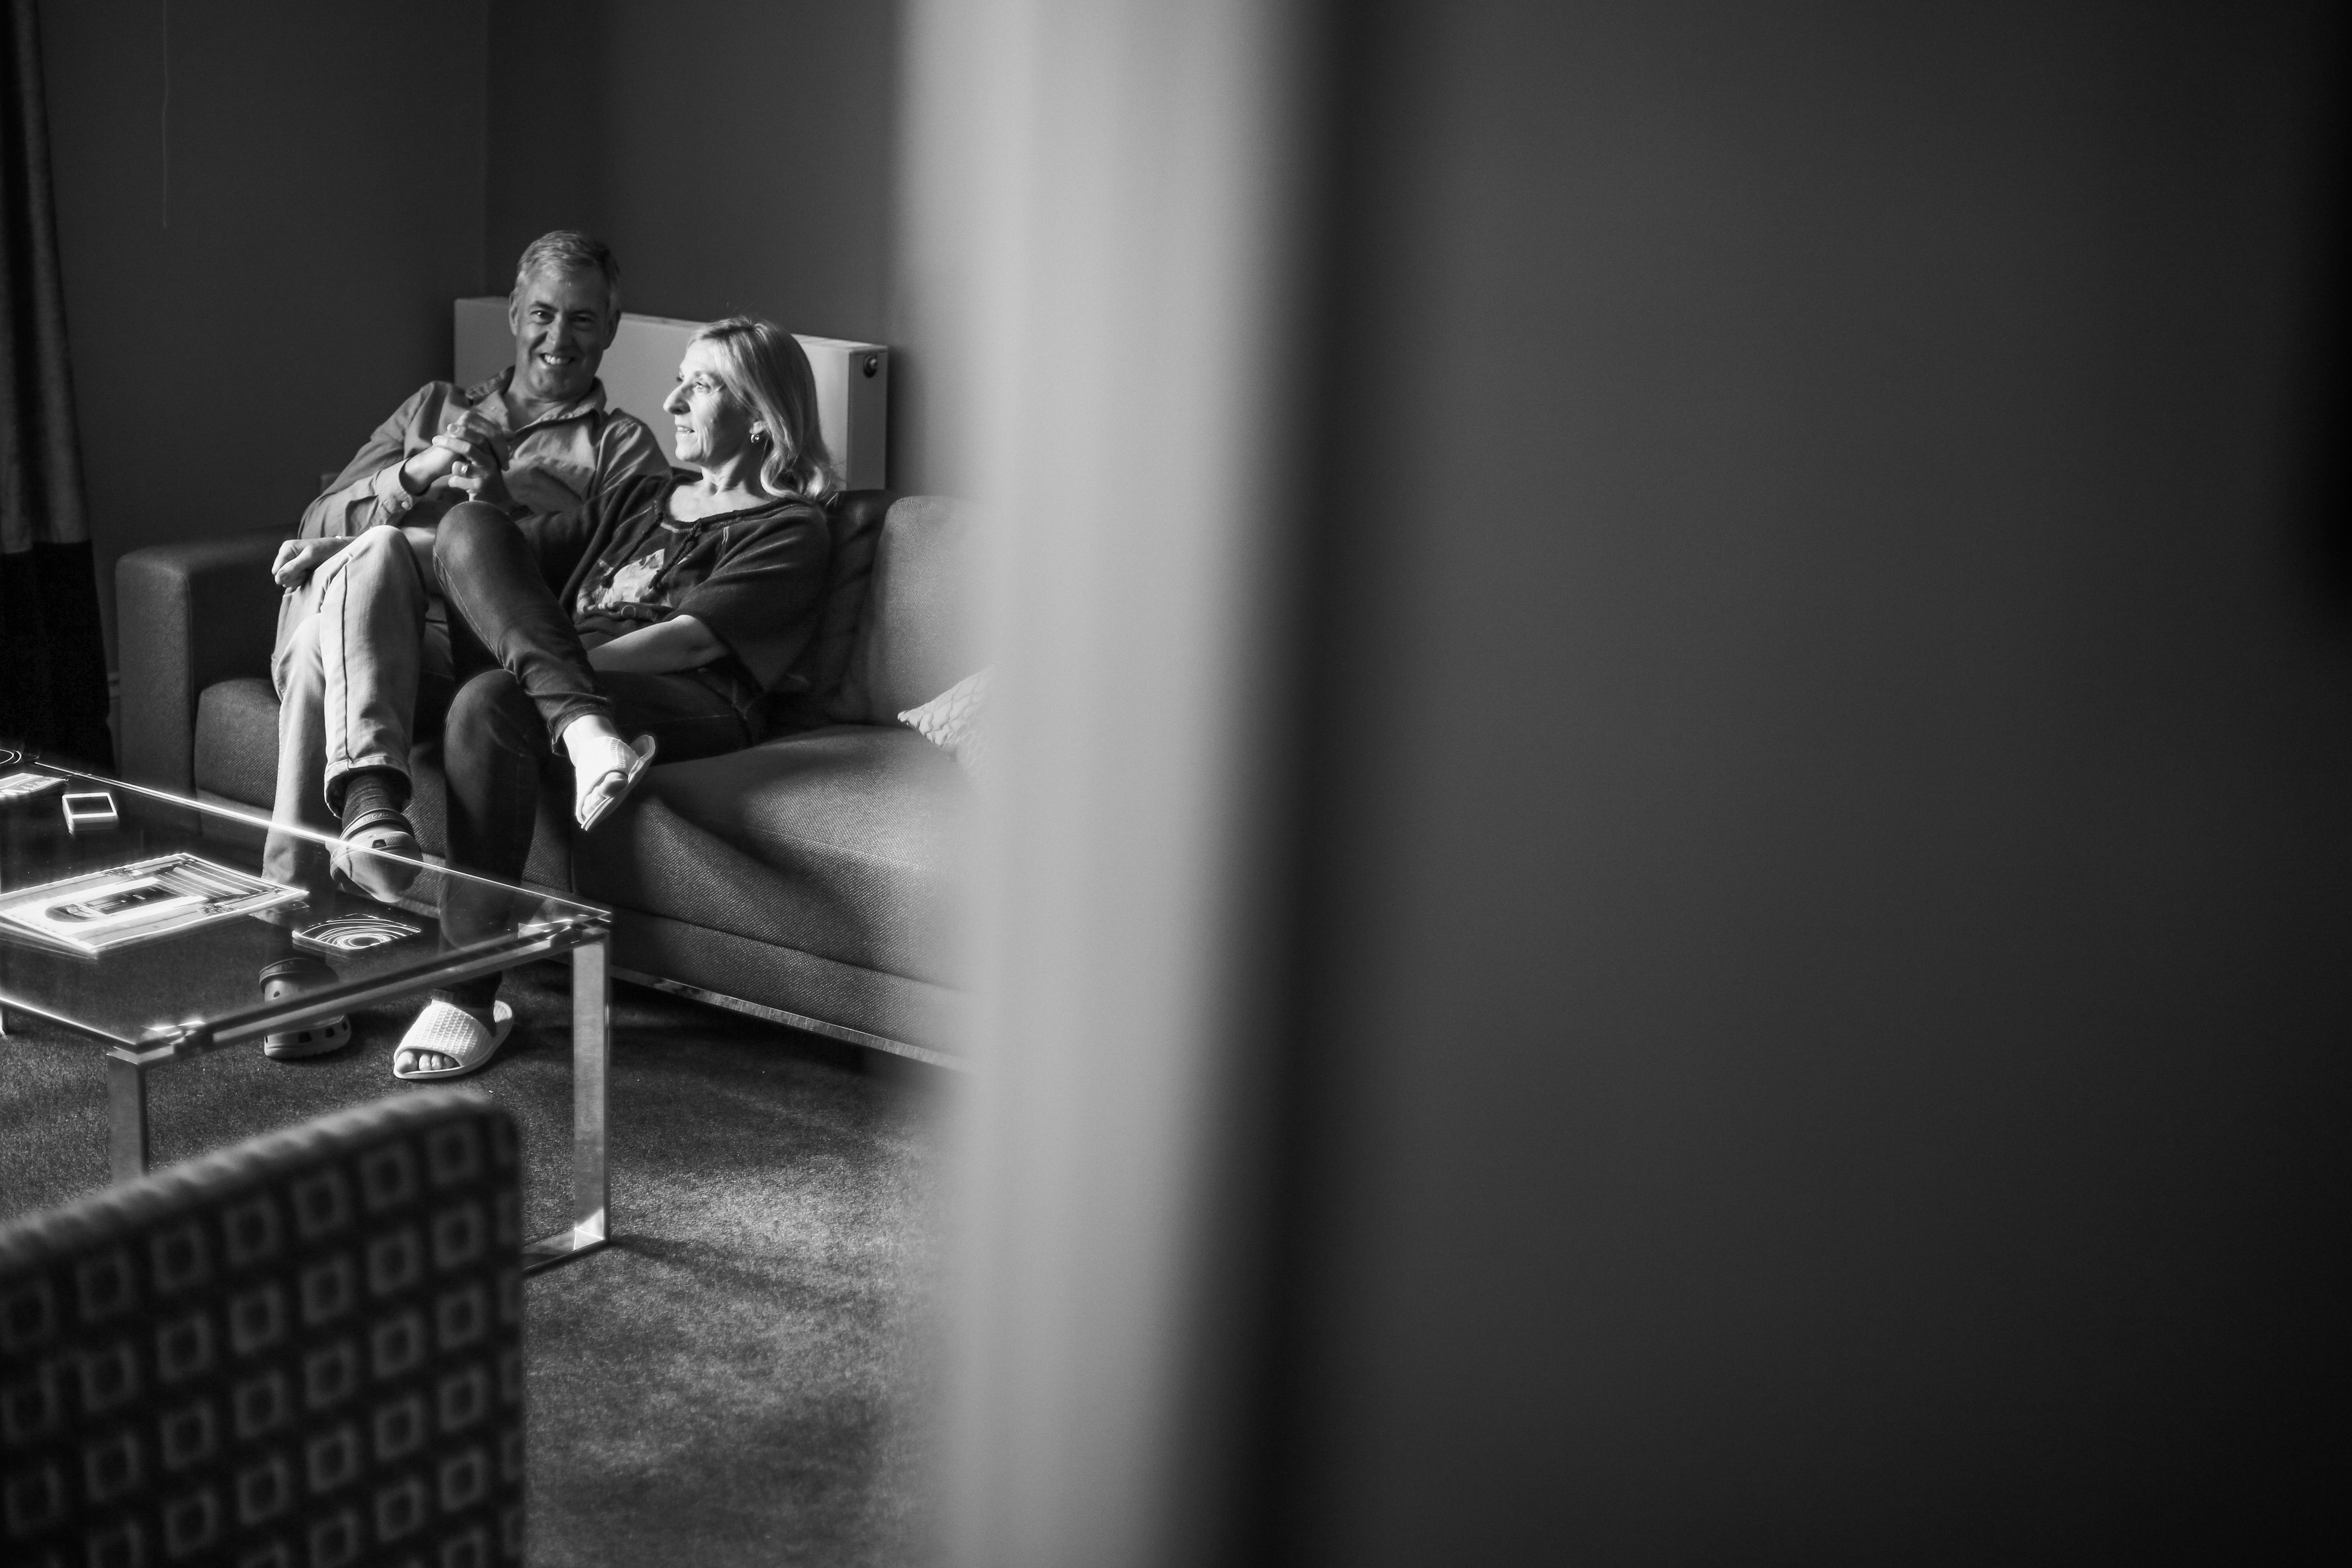 Candid Black and White Photography Stockport Wedding Photography